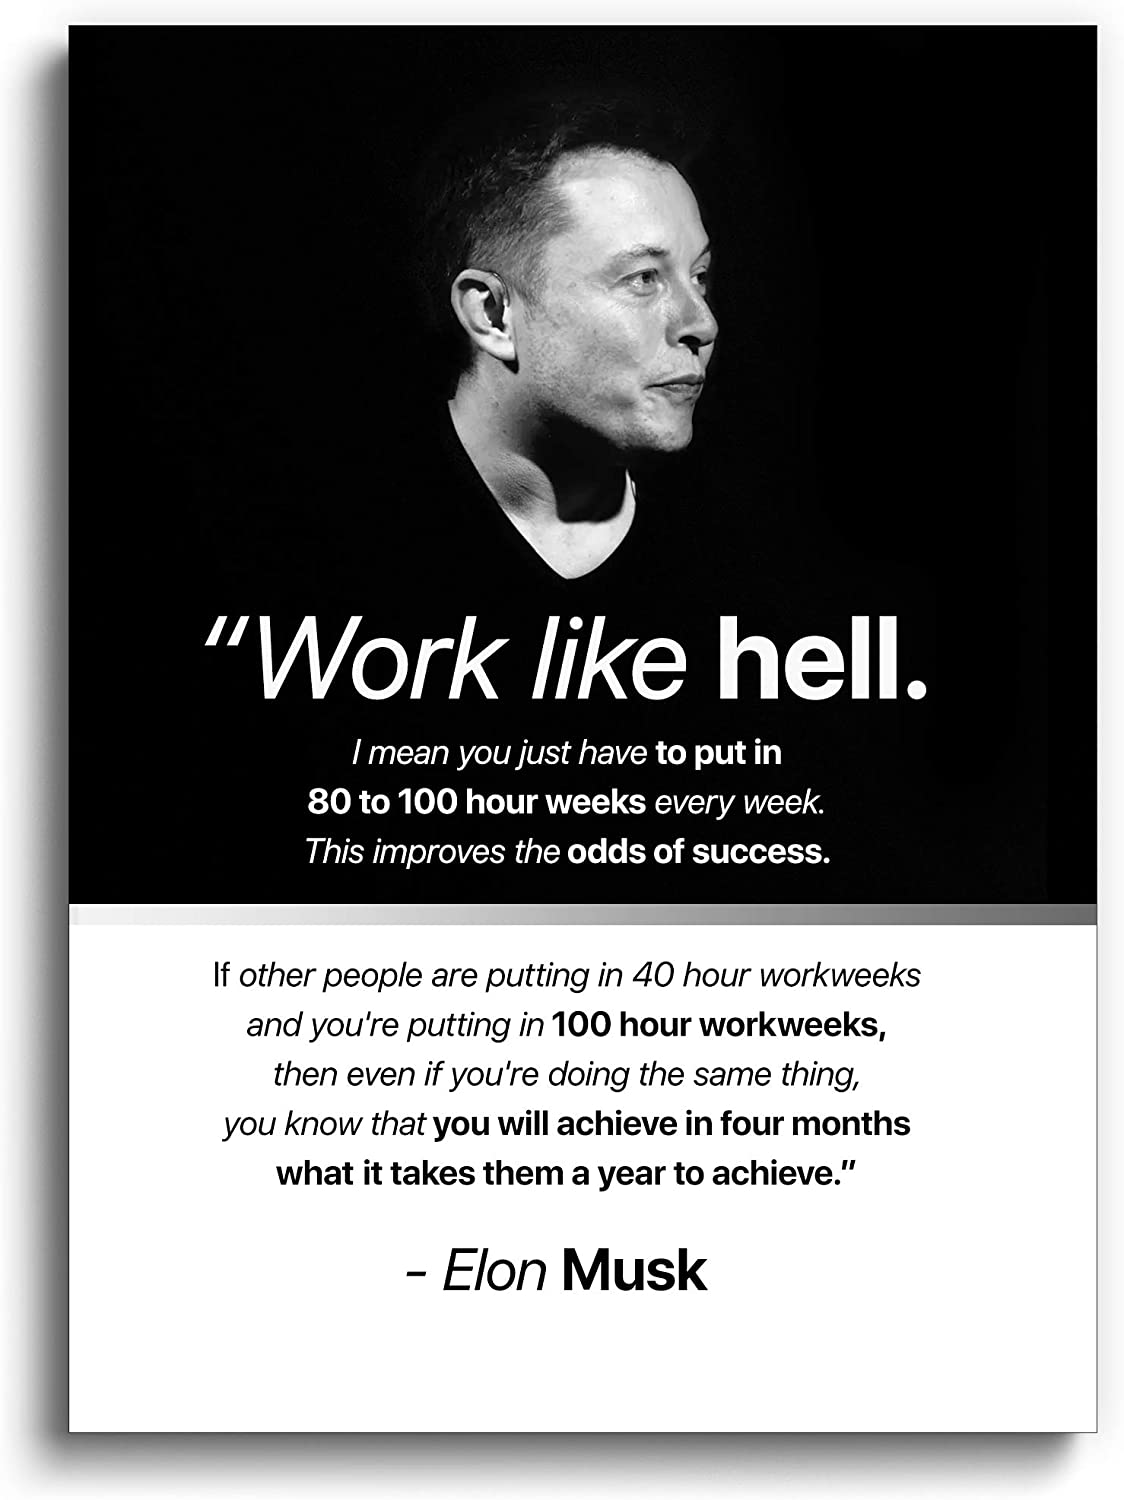 Large Motivational Poster with Elon Musk - (18''x24'' Inches) Premium Wall Art Decor for Home, Office, Living Room, Classroom, Bedroom, Dorm Room - Tesla merchandise, SpaceX merch, Neuralink - Mars - Entrepreneur Portrait and Quote - Inspirational Prints & Gifts - UNFRAMED